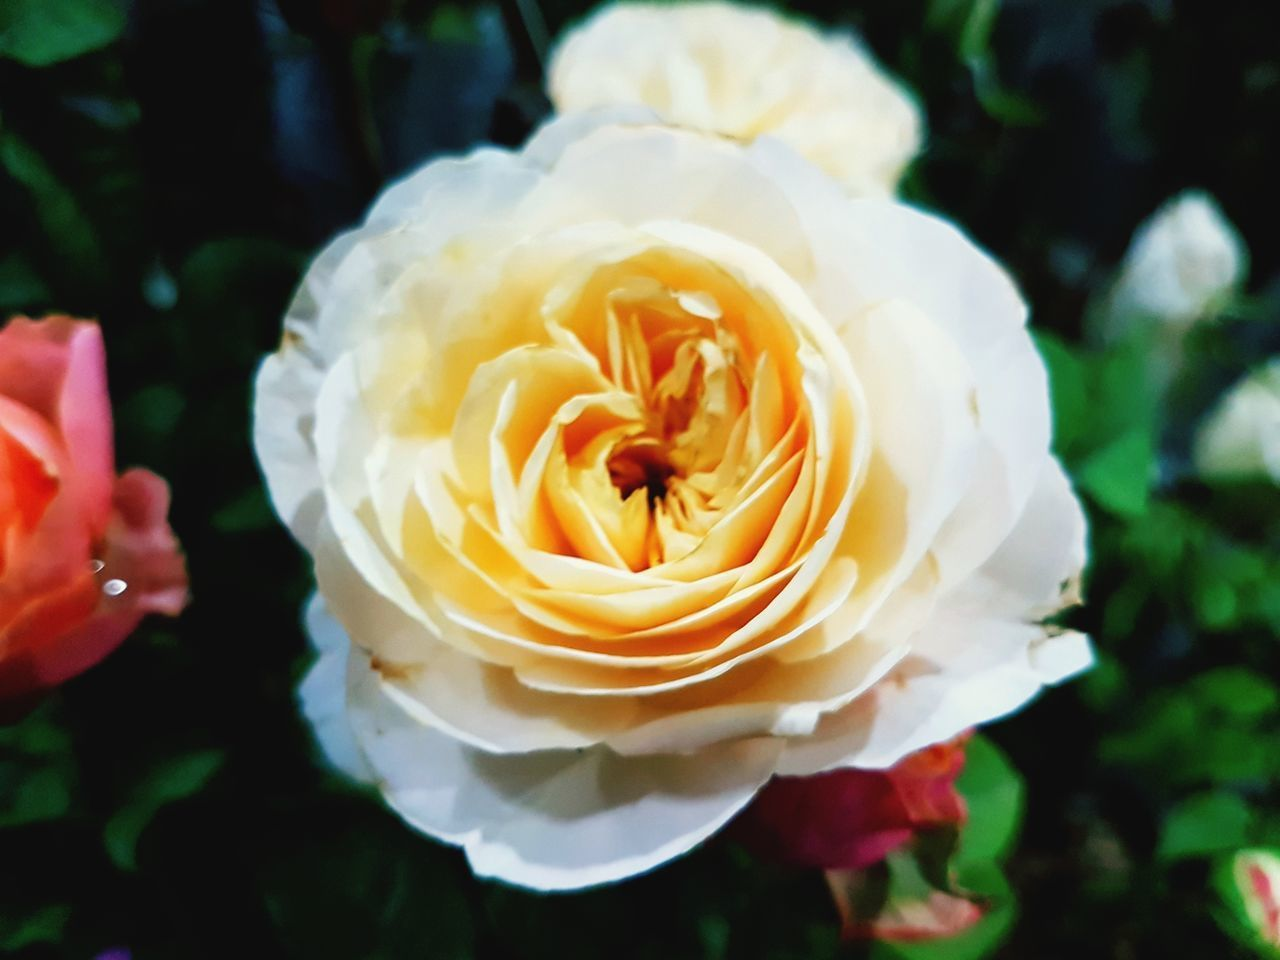 CLOSE-UP OF ROSE FLOWER AGAINST BLURRED BACKGROUND